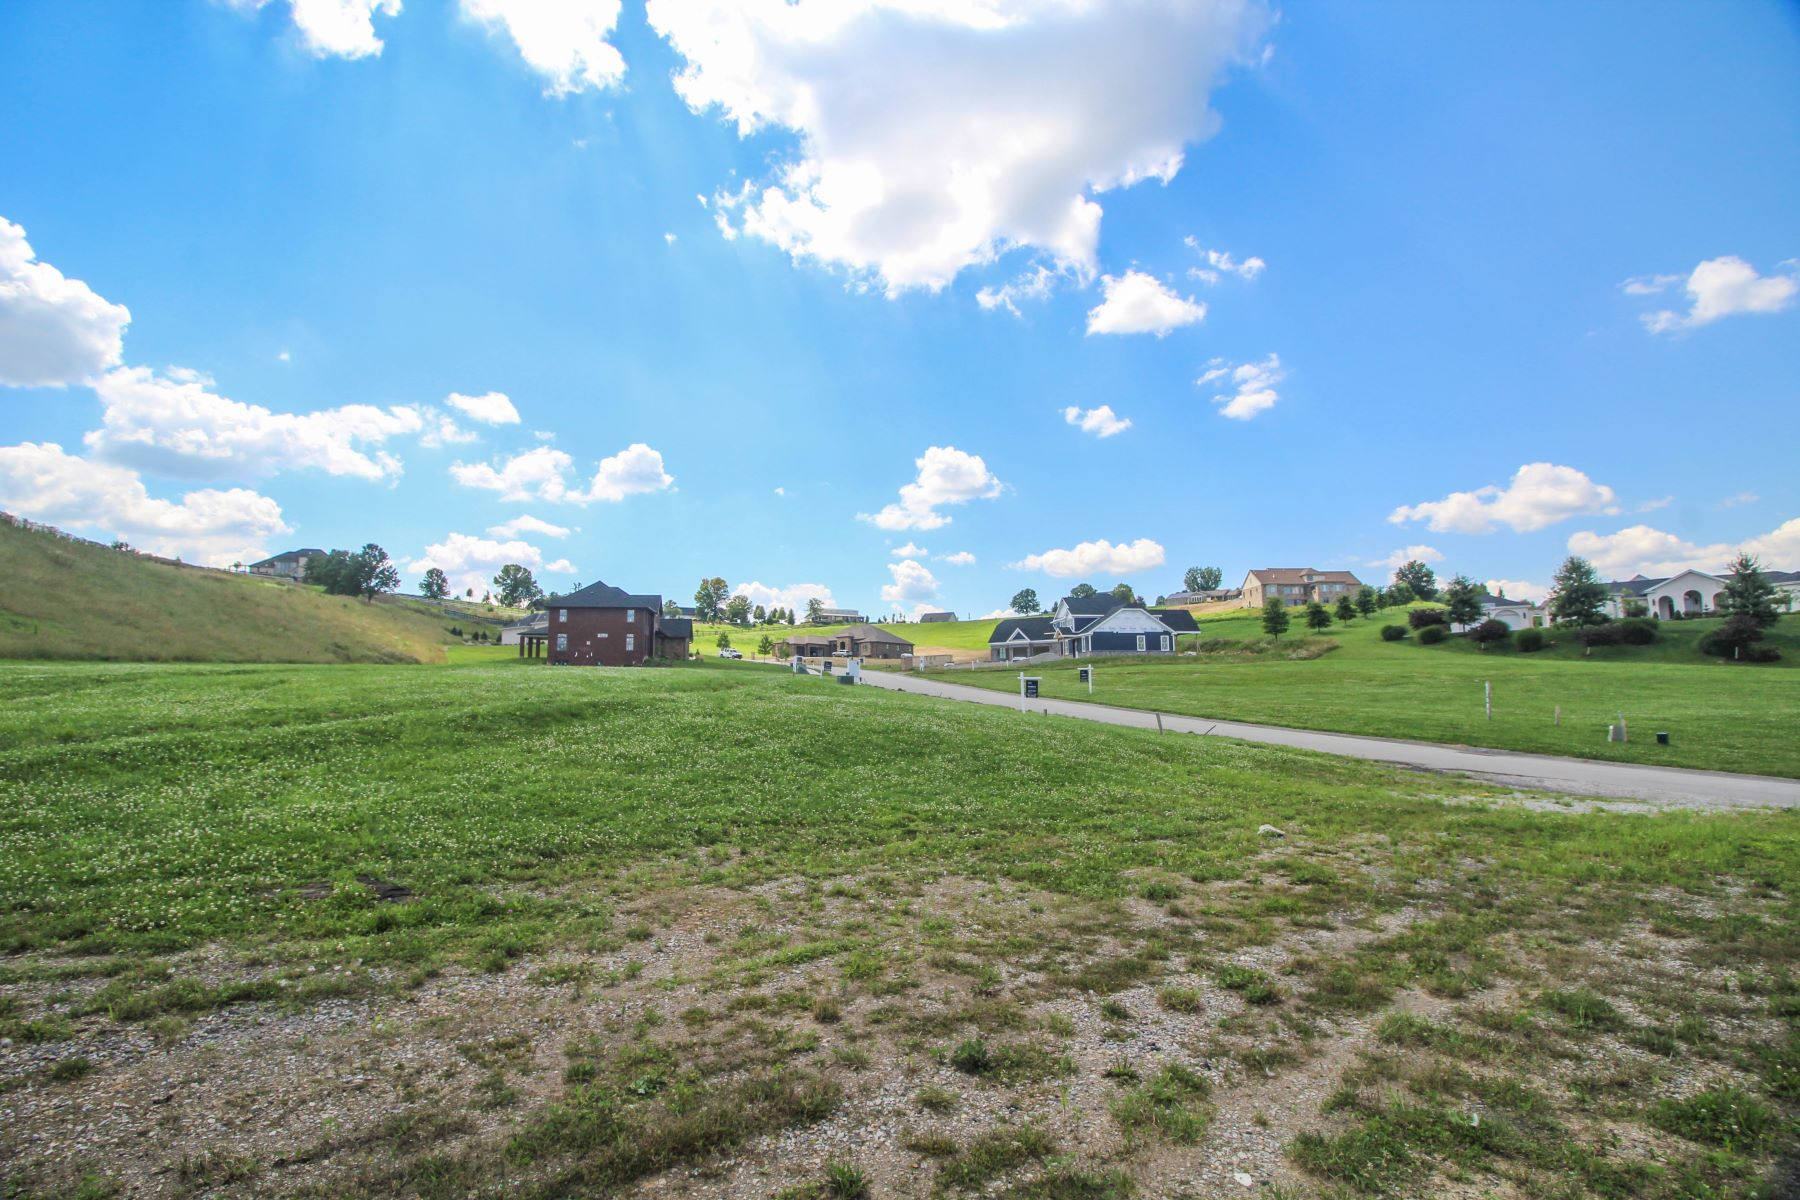 Land for Sale at Piatt Estates Home Site - Lot 102R 102 Piatt Estates Drive Lot 102R Washington, Pennsylvania 15301 United States